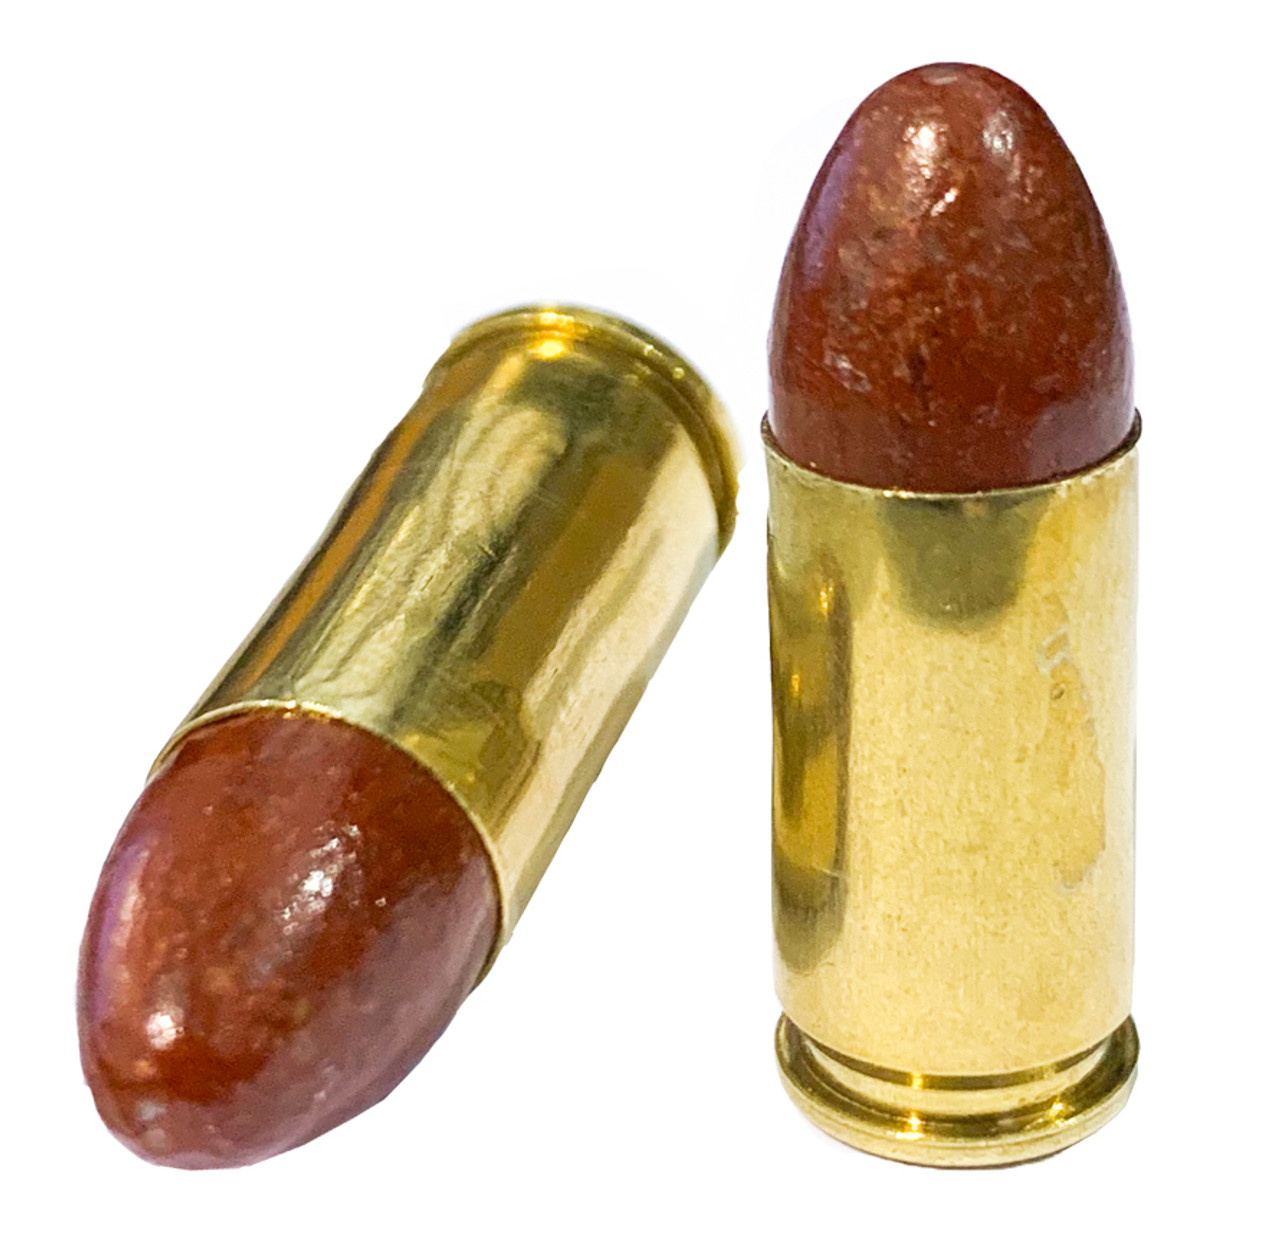 9MM 115g RN No Lube Groove Coated Bullets